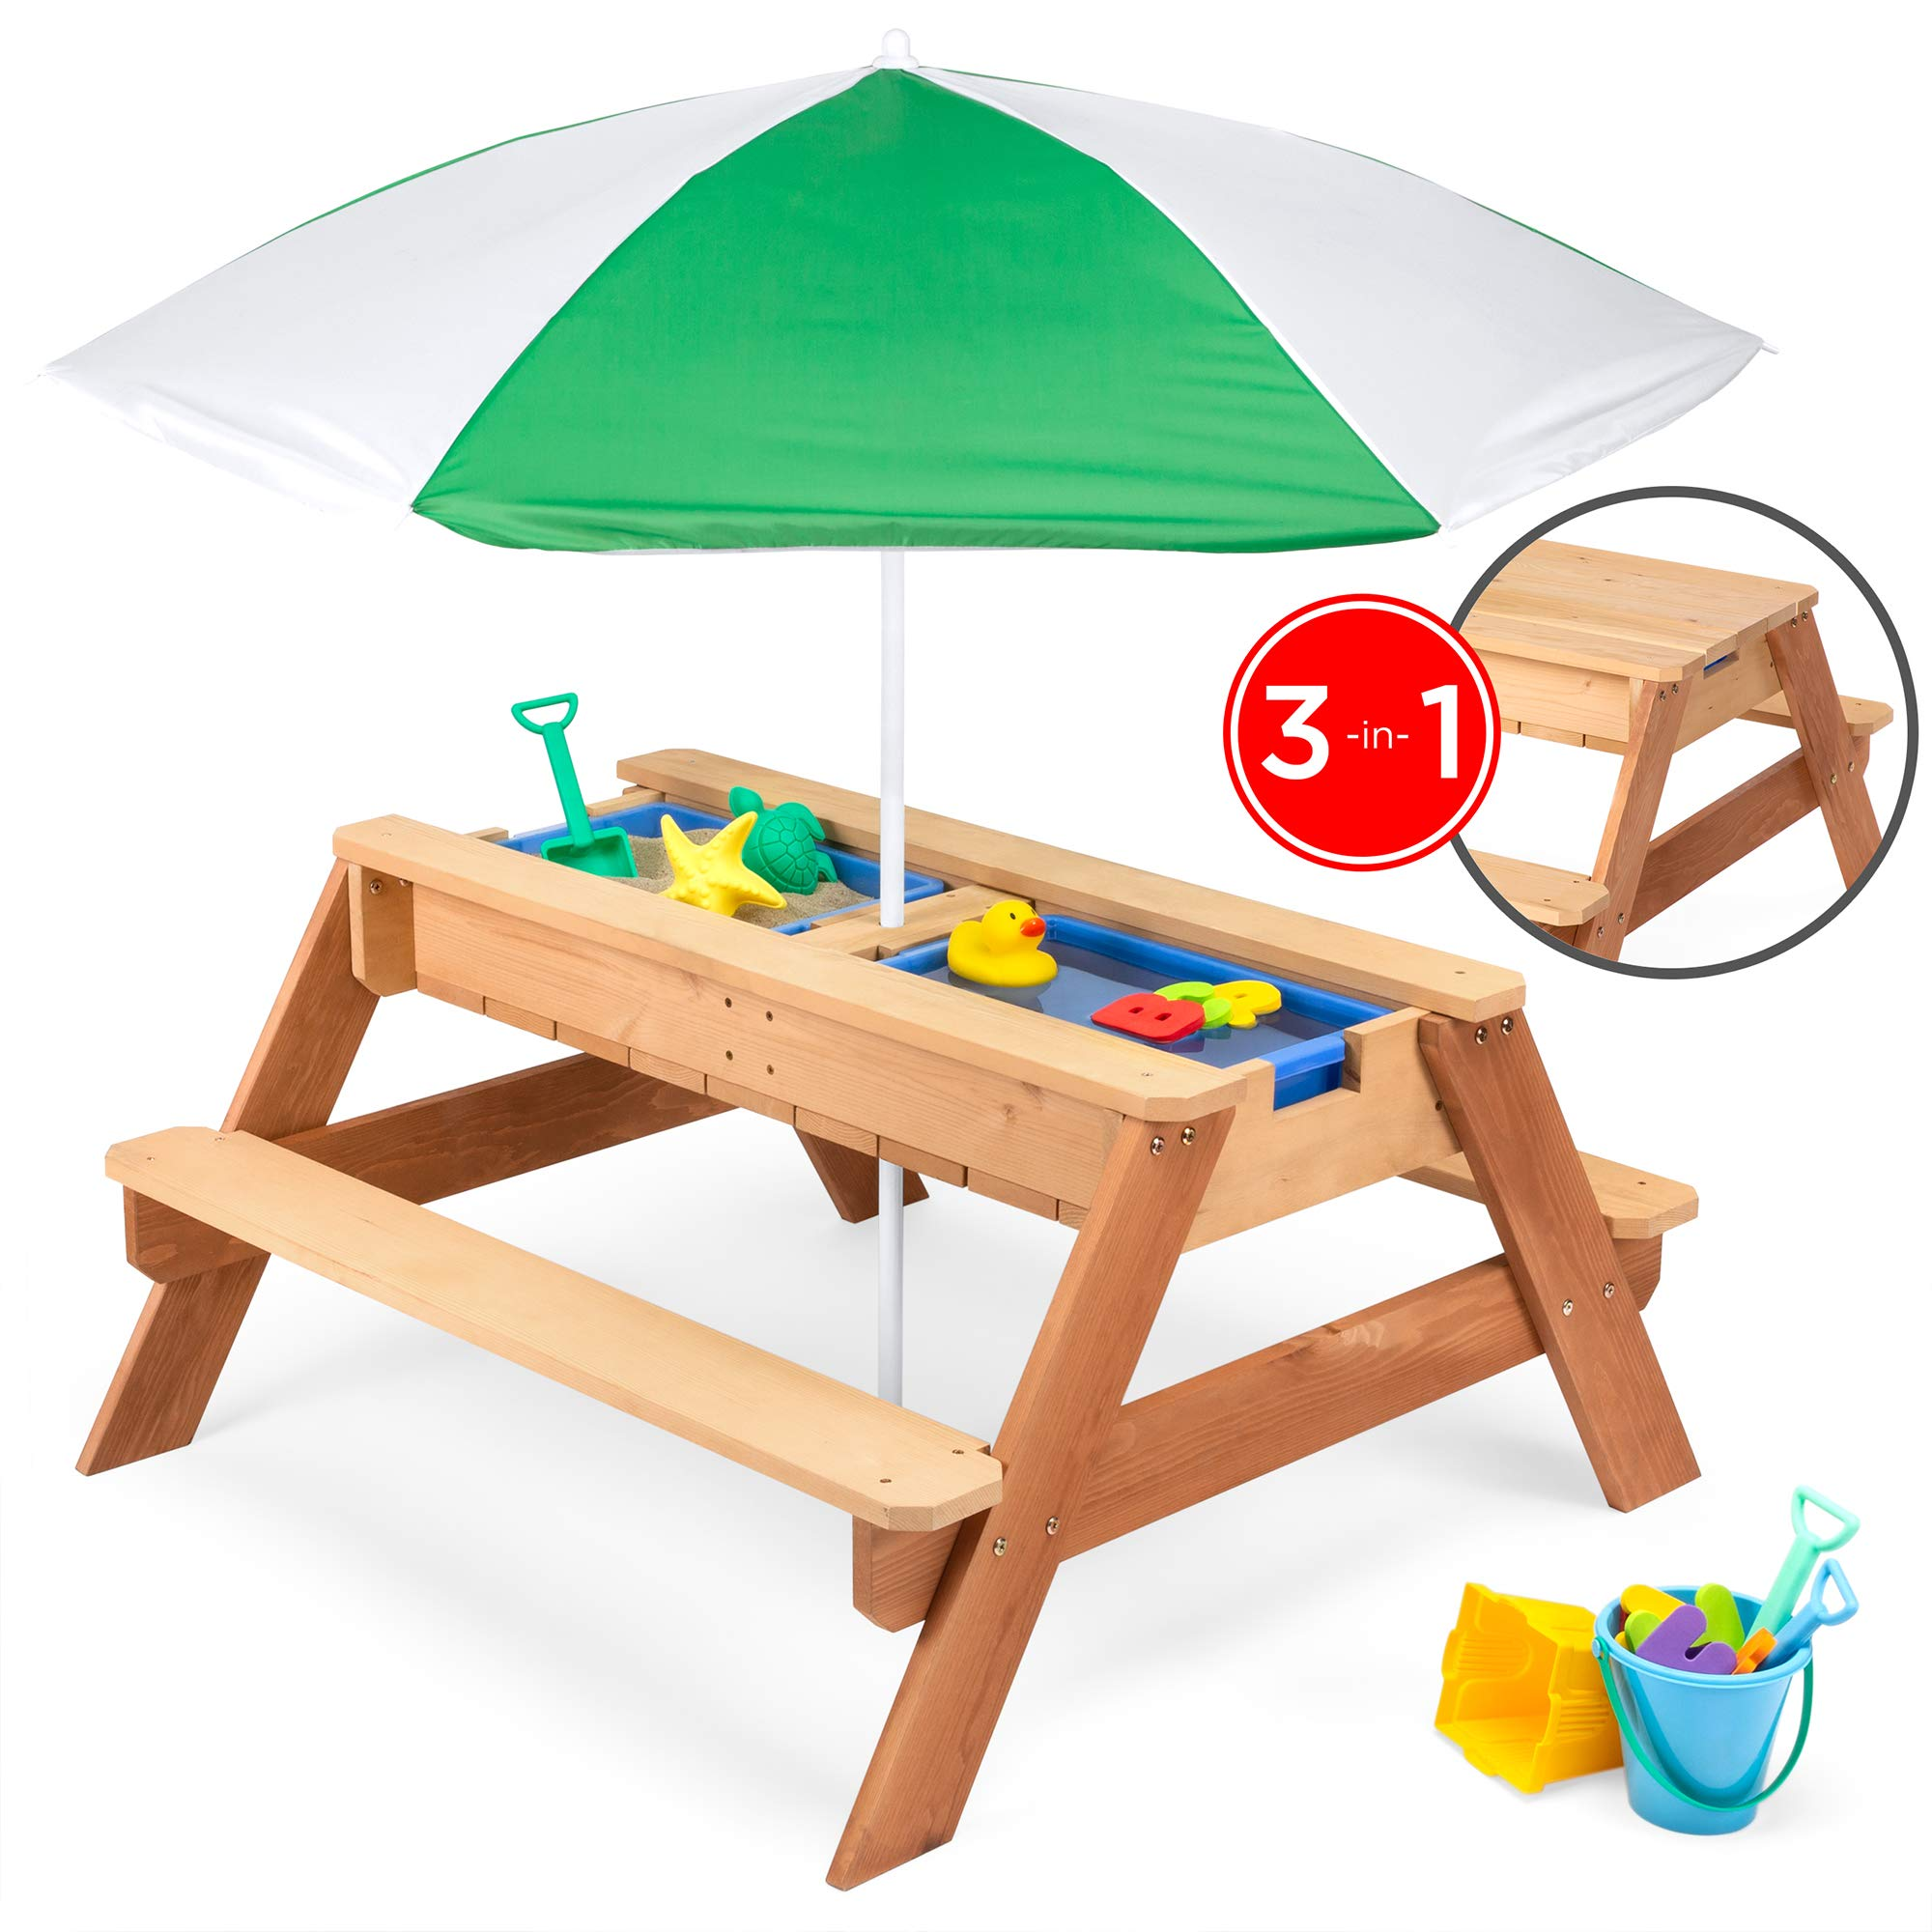 Best Choice Products Kids 3-in-1 Outdoor Wood Activity/Picnic Table with Umbrella and 2 Play Boxes by Best Choice Products